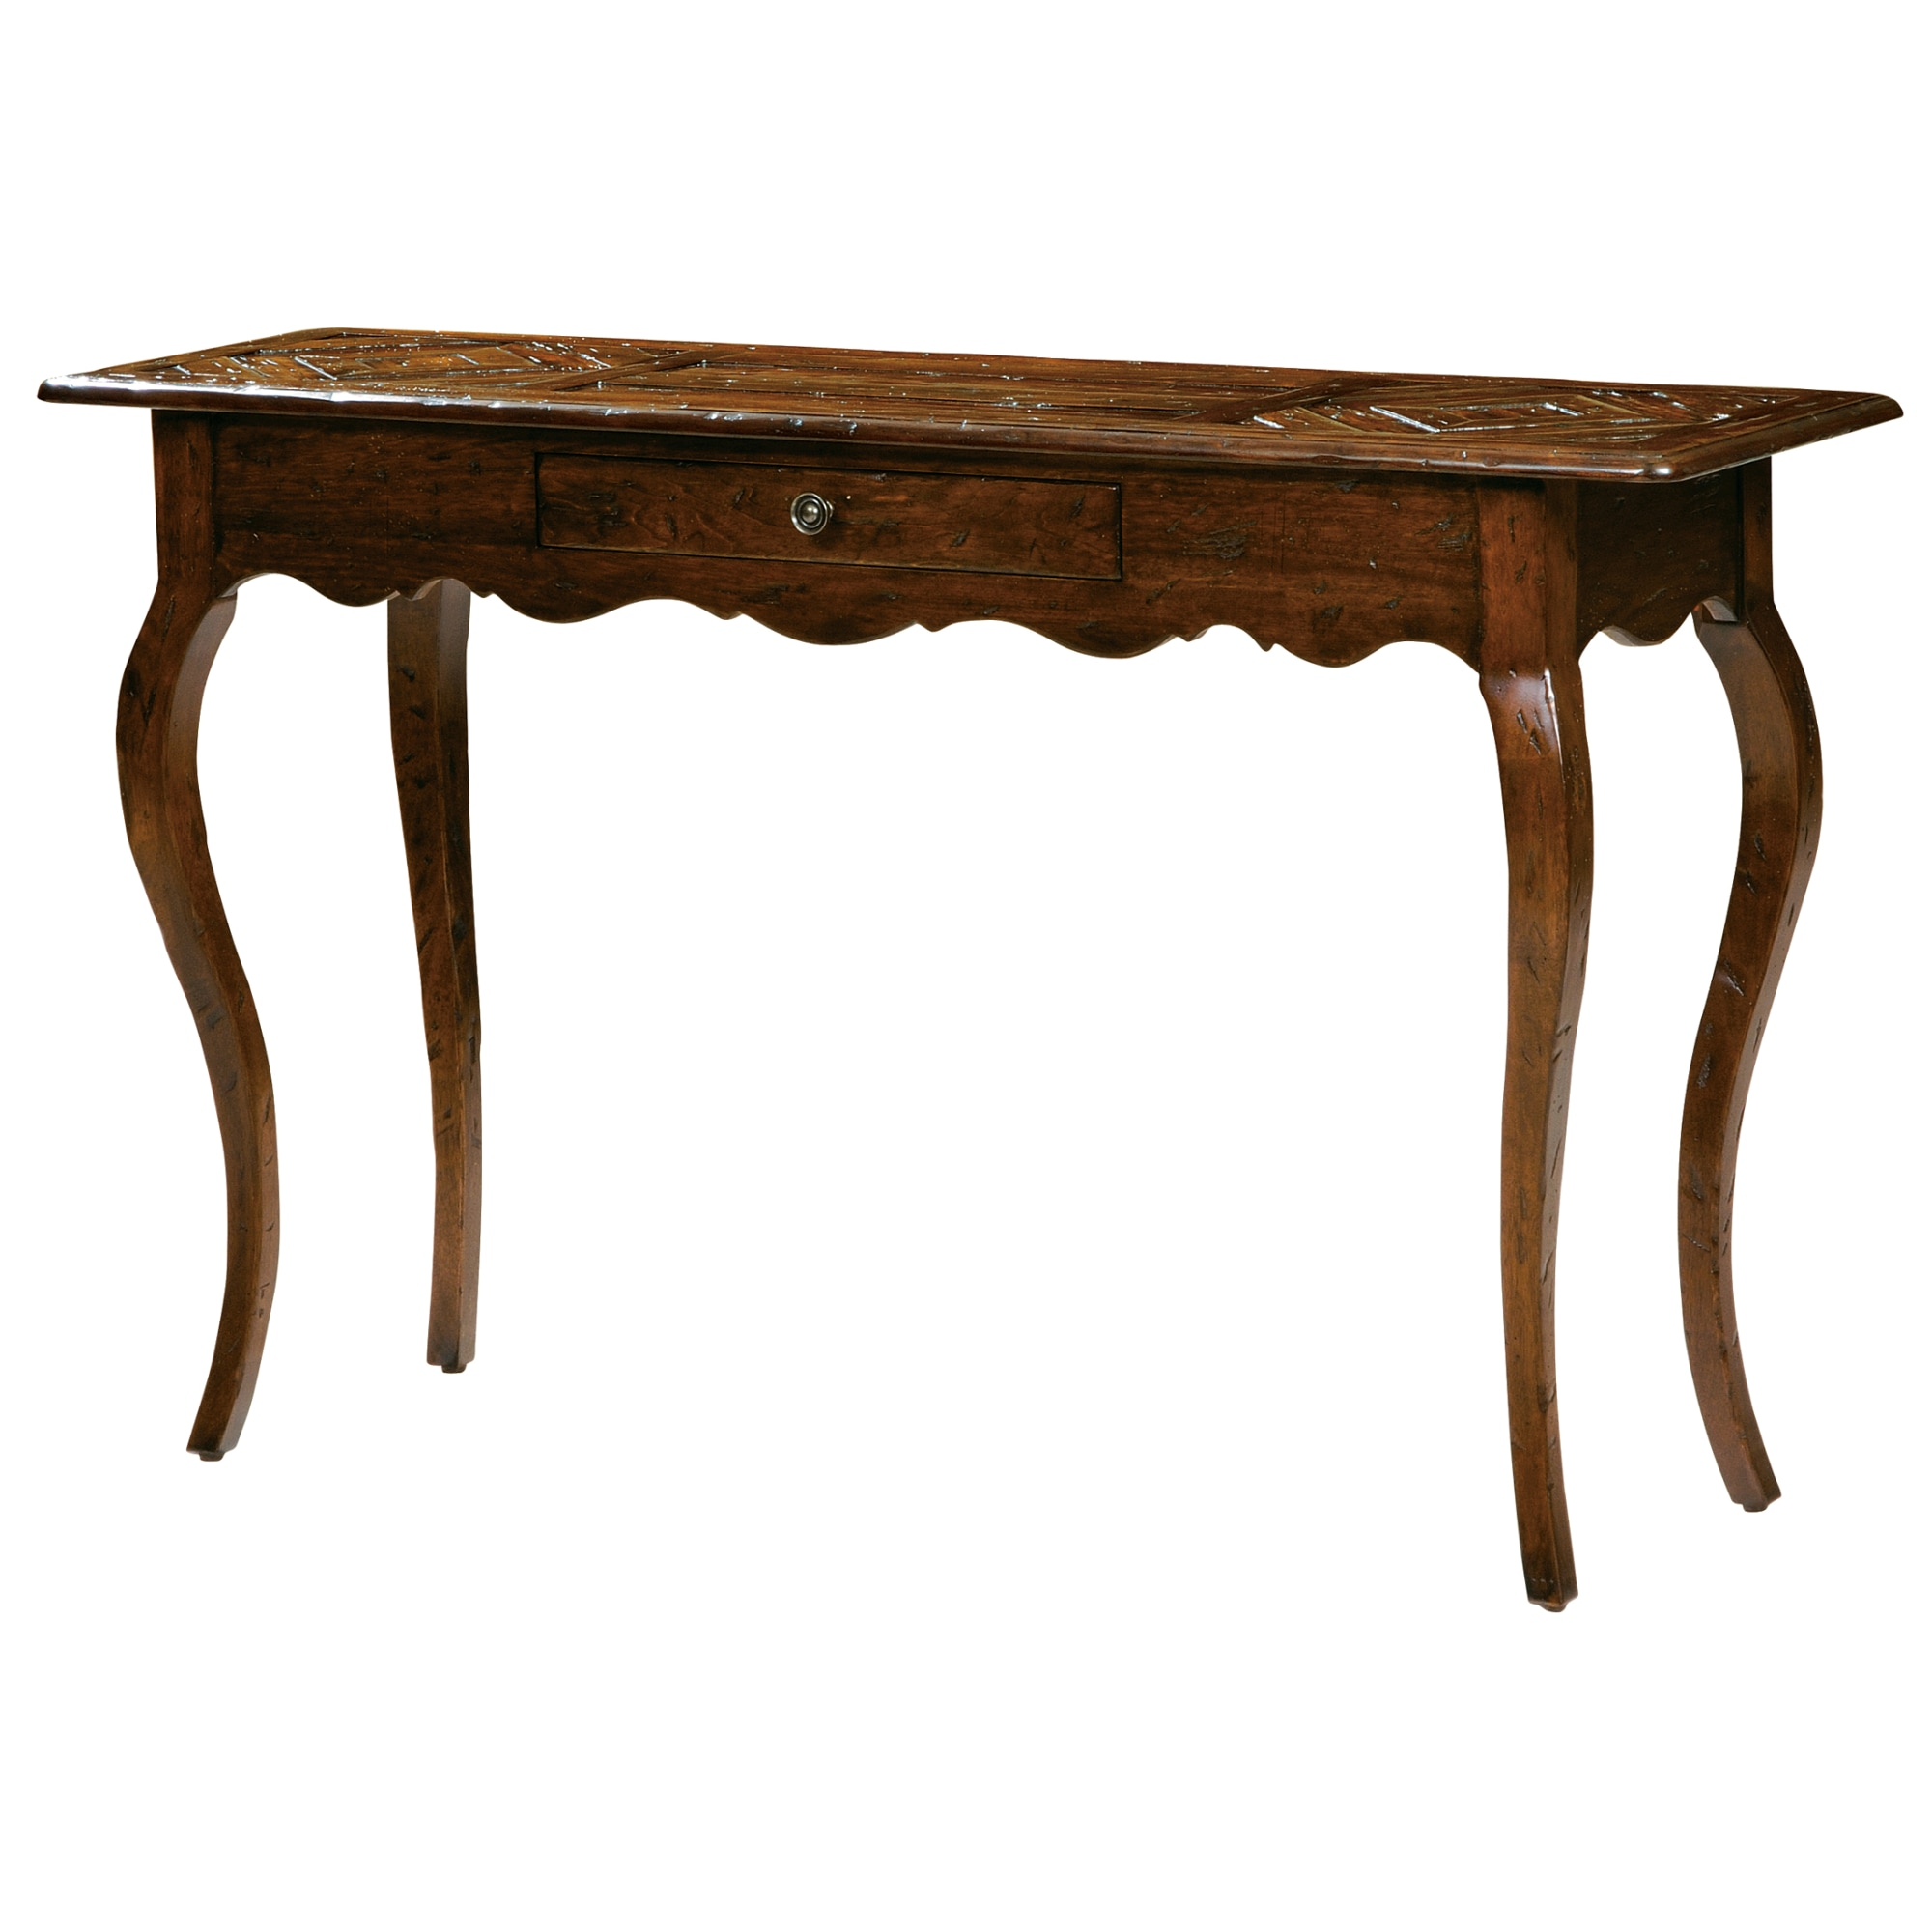 Image for 8-7210 Rue de Bac Sofa Table from Hekman Official Website